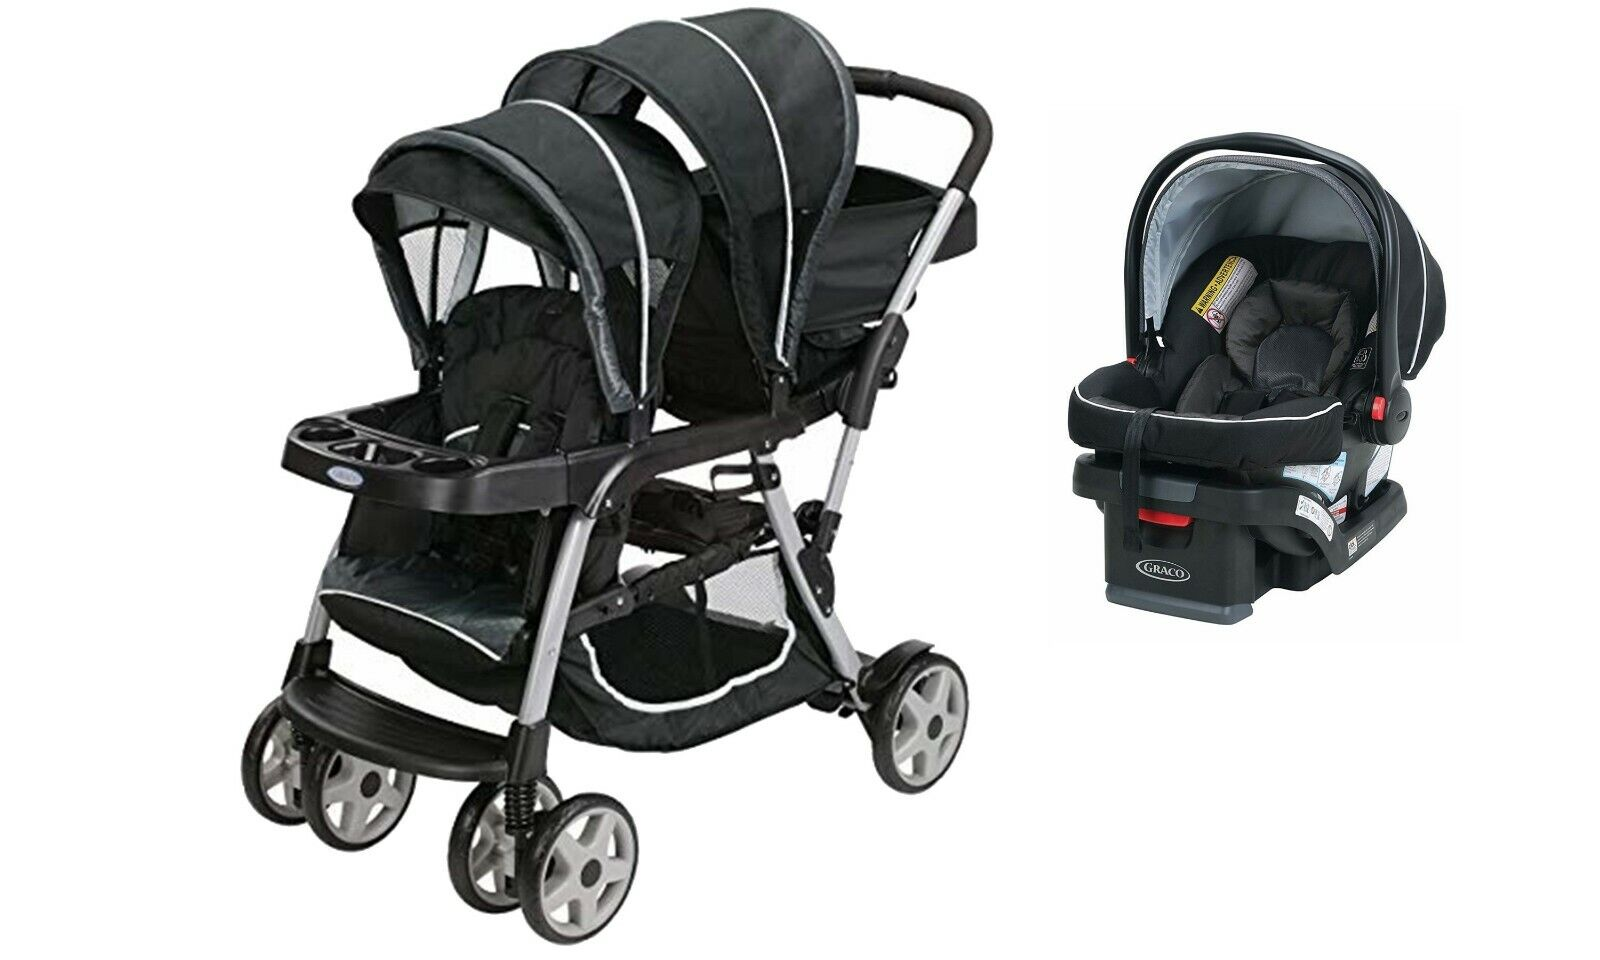 Graco Baby Double Stroller Sit N Stand with Car Seat Kids To